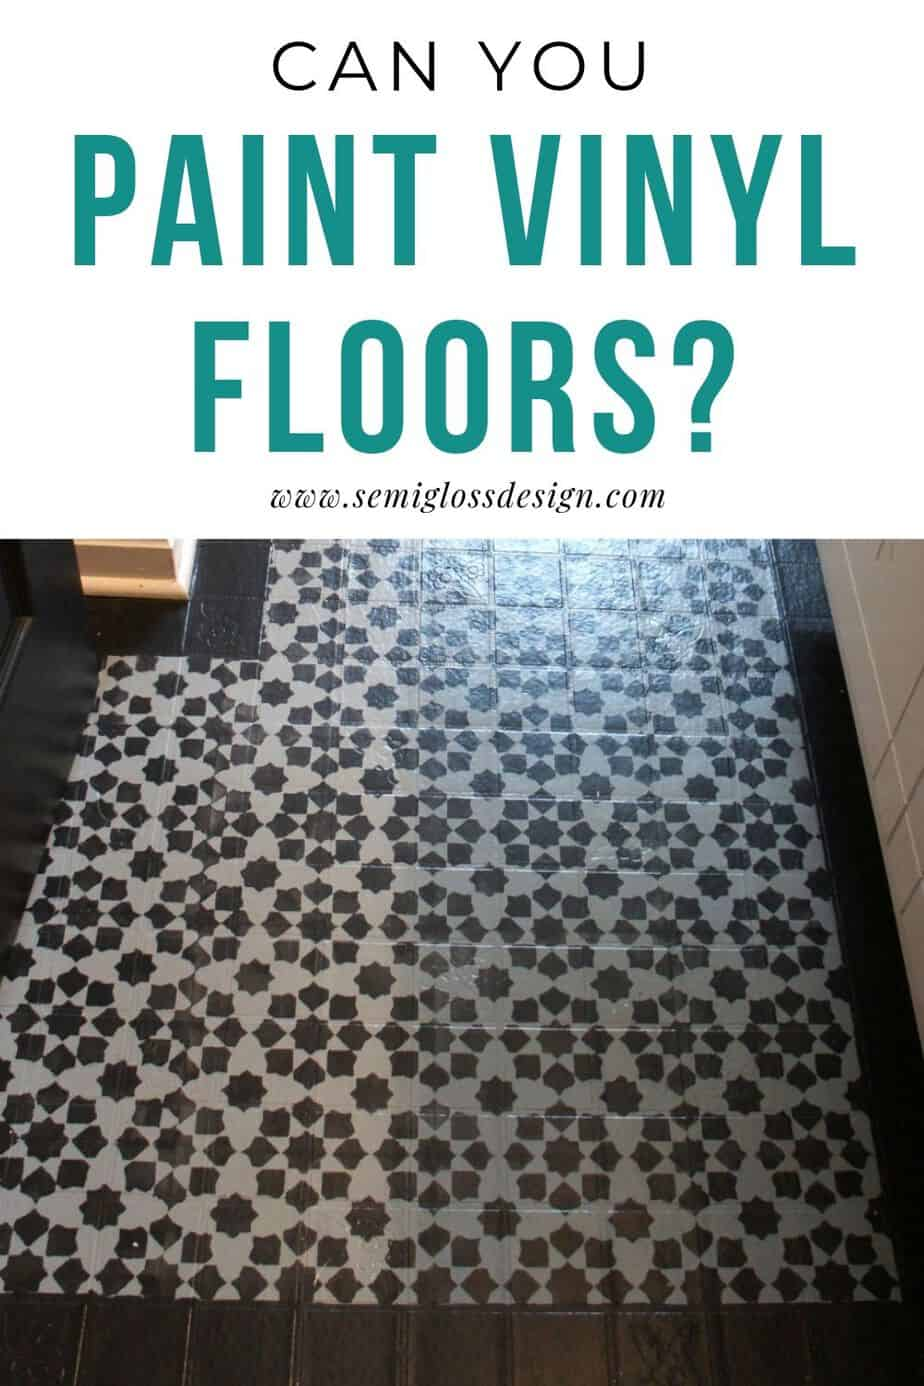 can you paint vinyl flooring?